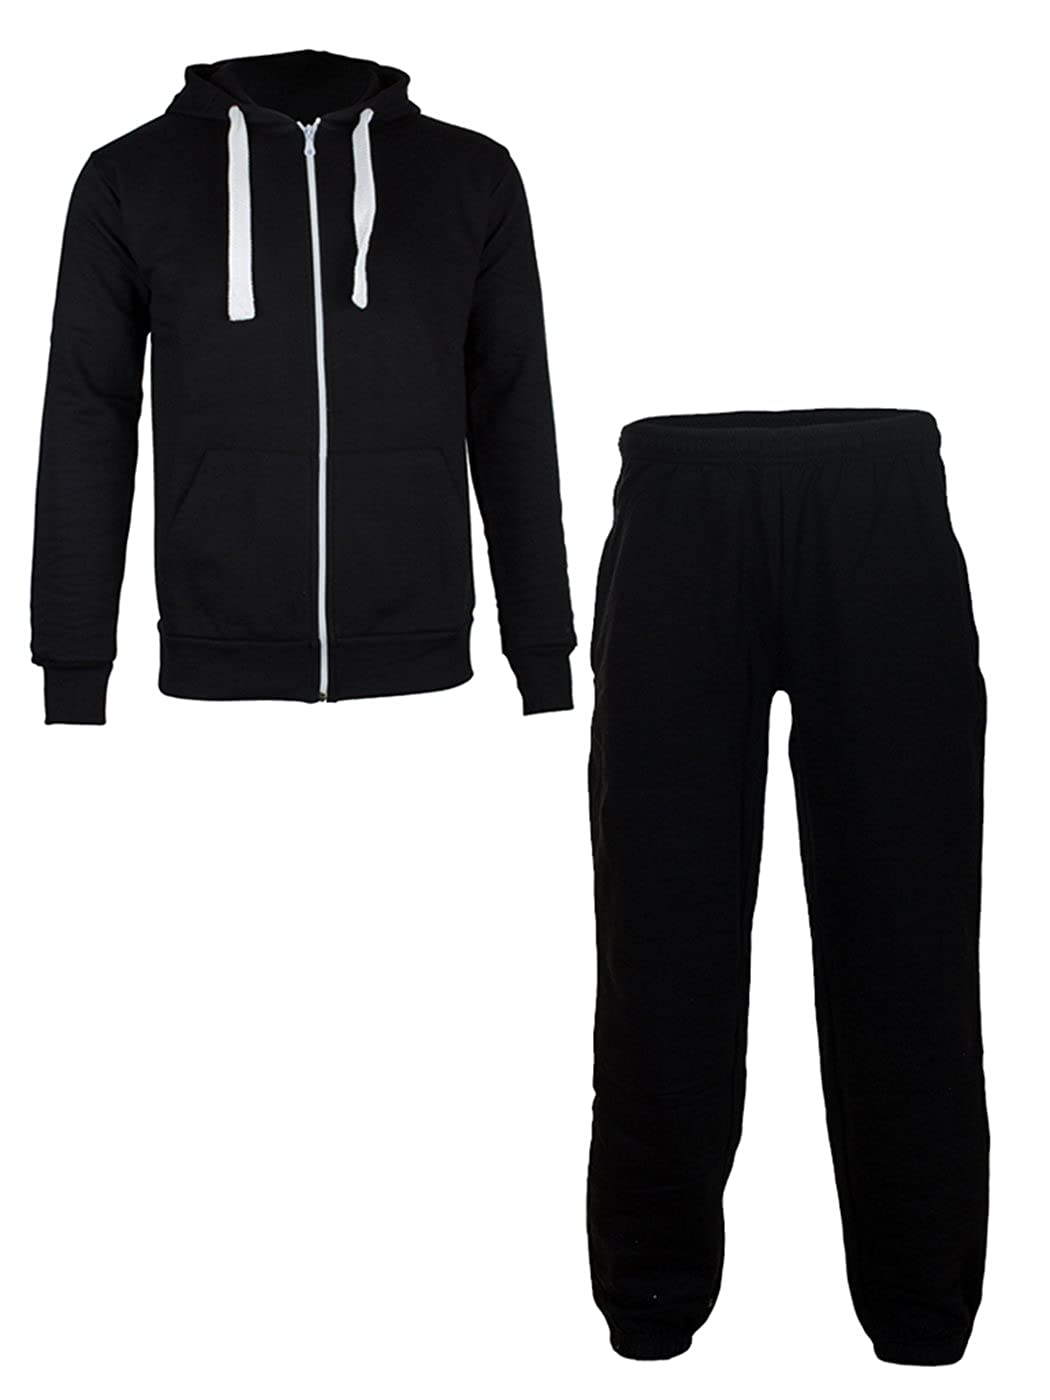 Love My Fashions® Mens Tracksuit Jogging Bottoms Zip Up Fleece Sports Gym Hoodie Drawstring Long Sleeves Warm Trouser Top Size S M L XL XXL